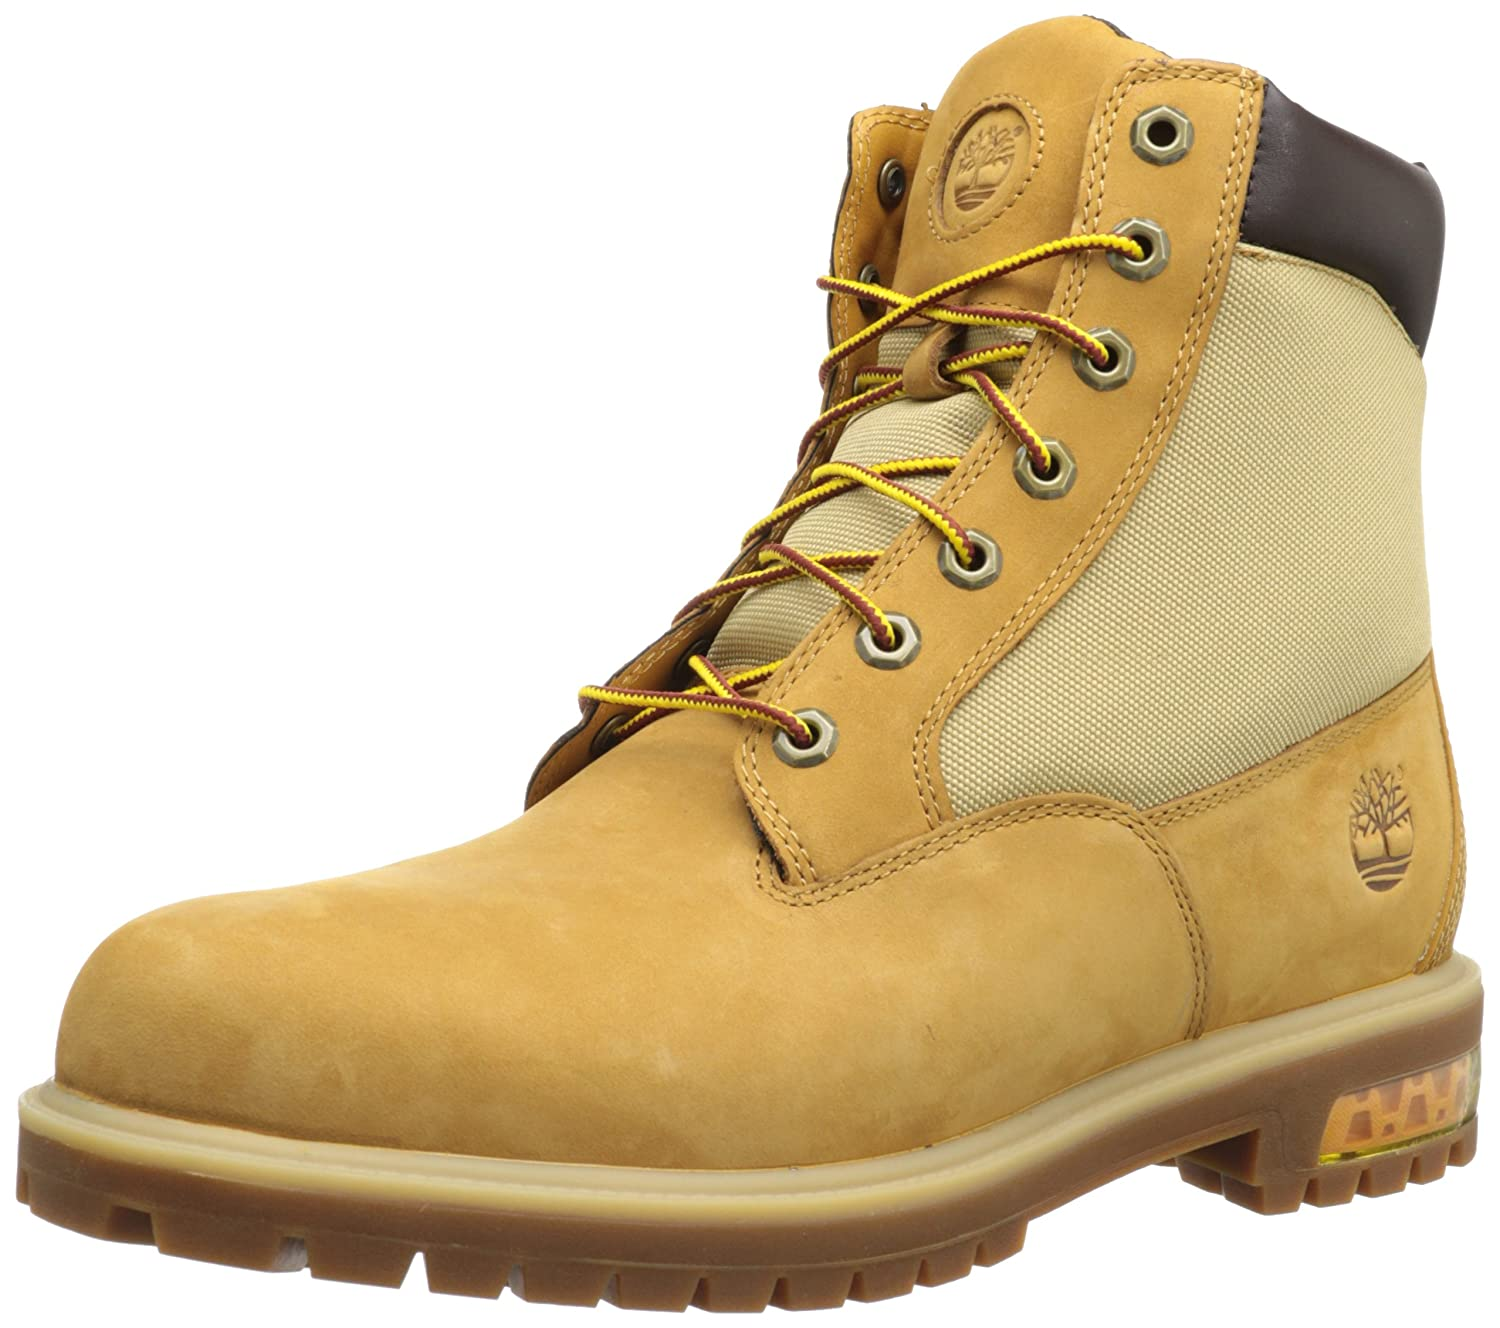 low cost 03be5 d9918 ... Amazon.com Timberland Mens 6 Inch Premium Helcor Fabric Boot Industrial  Construction Boots ...